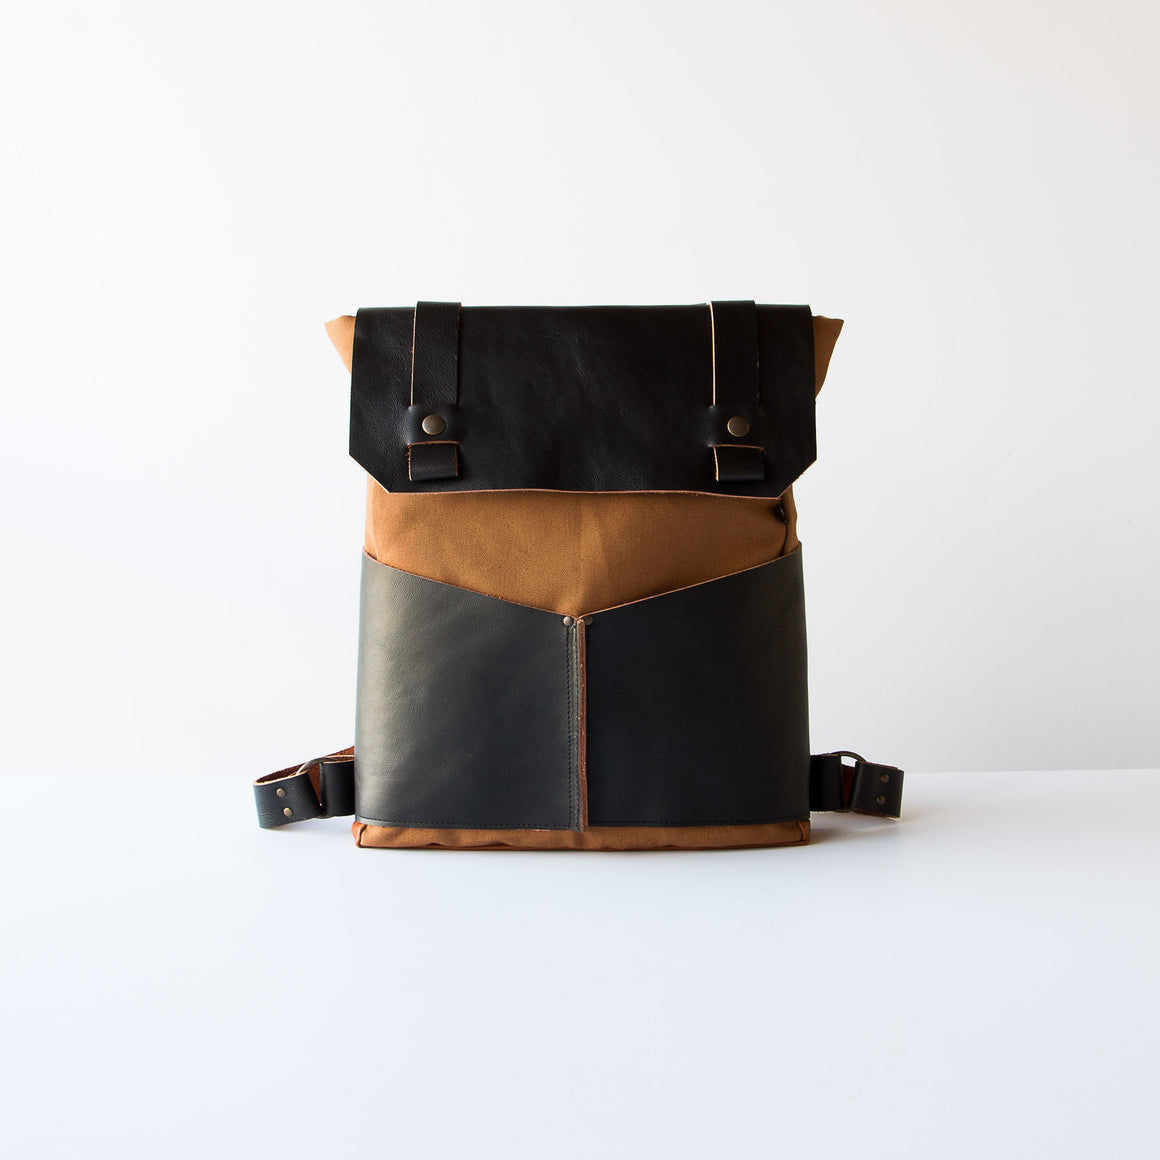 Man Wearing a Leather & Cotton Backpack - Handmade in Montreal, Canada.